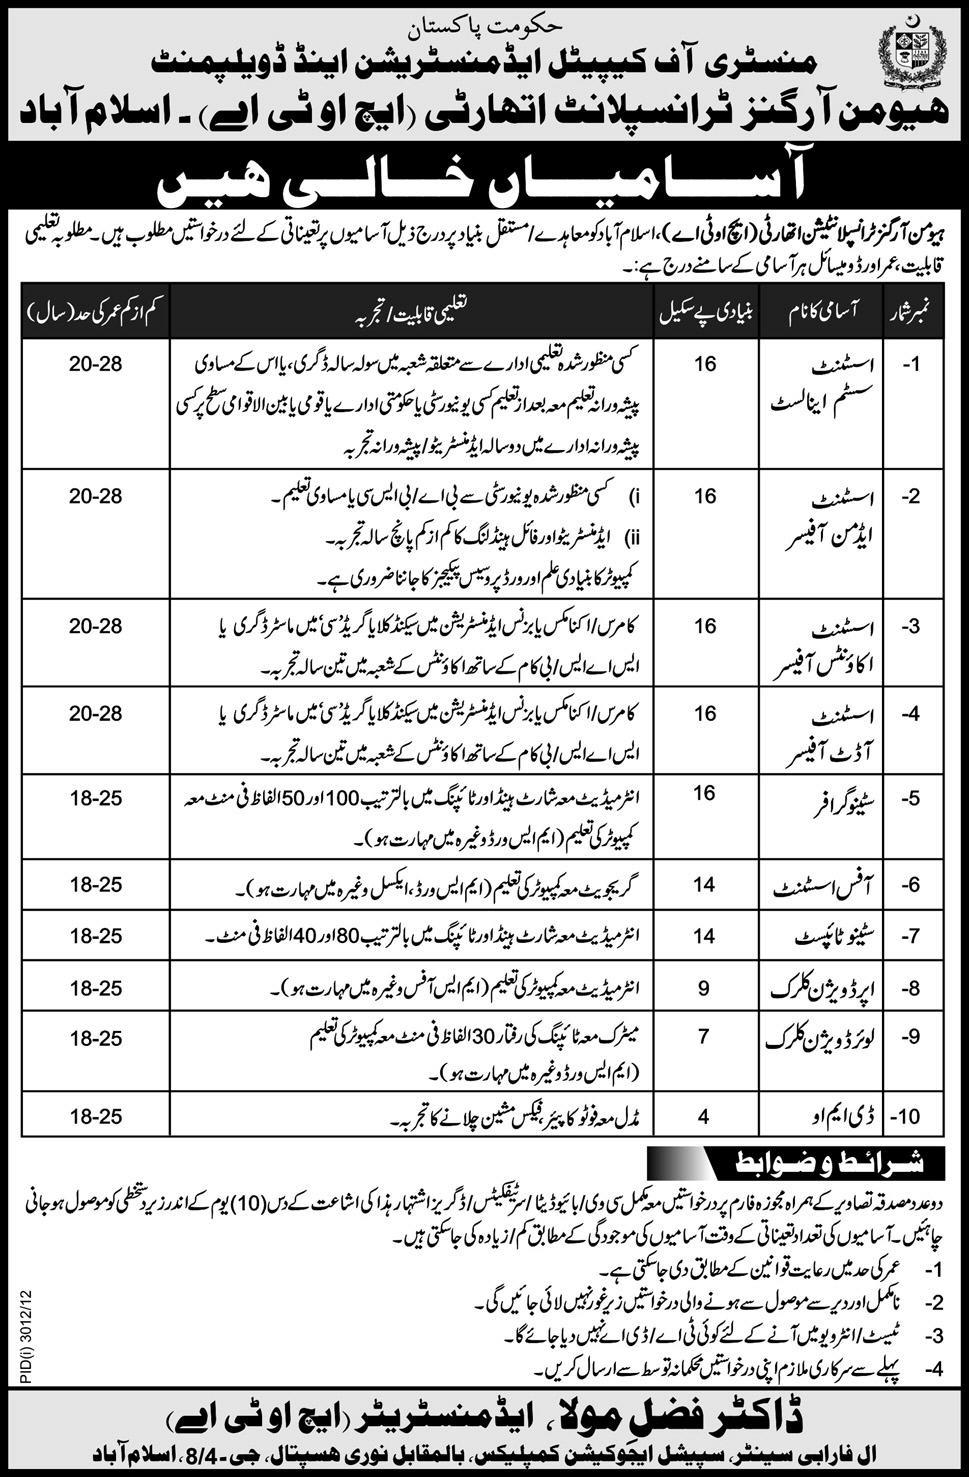 jobs in islamabad Jobs in Human Organs Transplantation Authority Islamabad